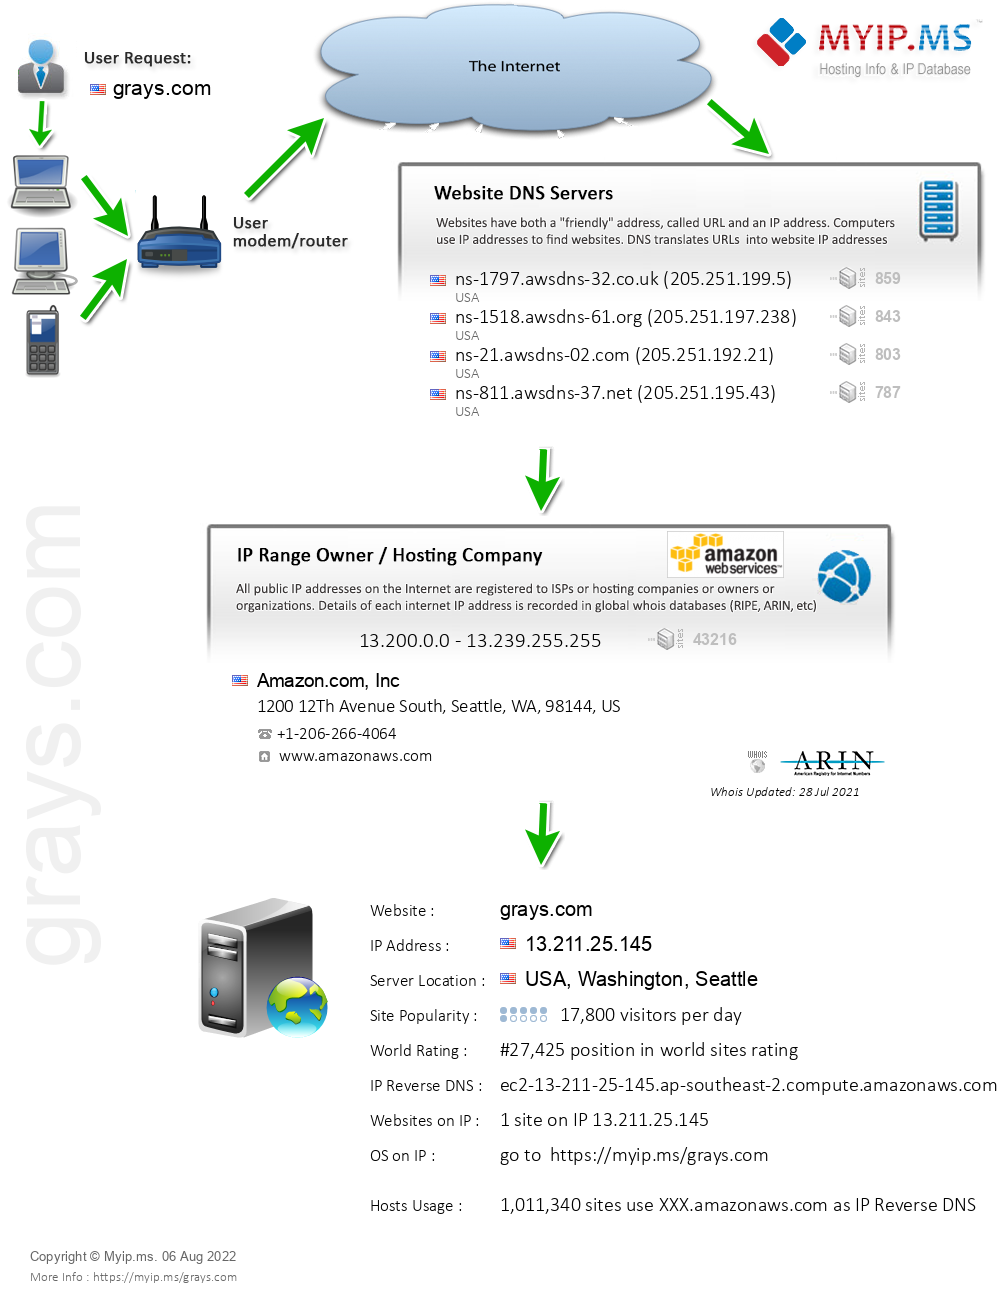 Grays.com - Website Hosting Visual IP Diagram